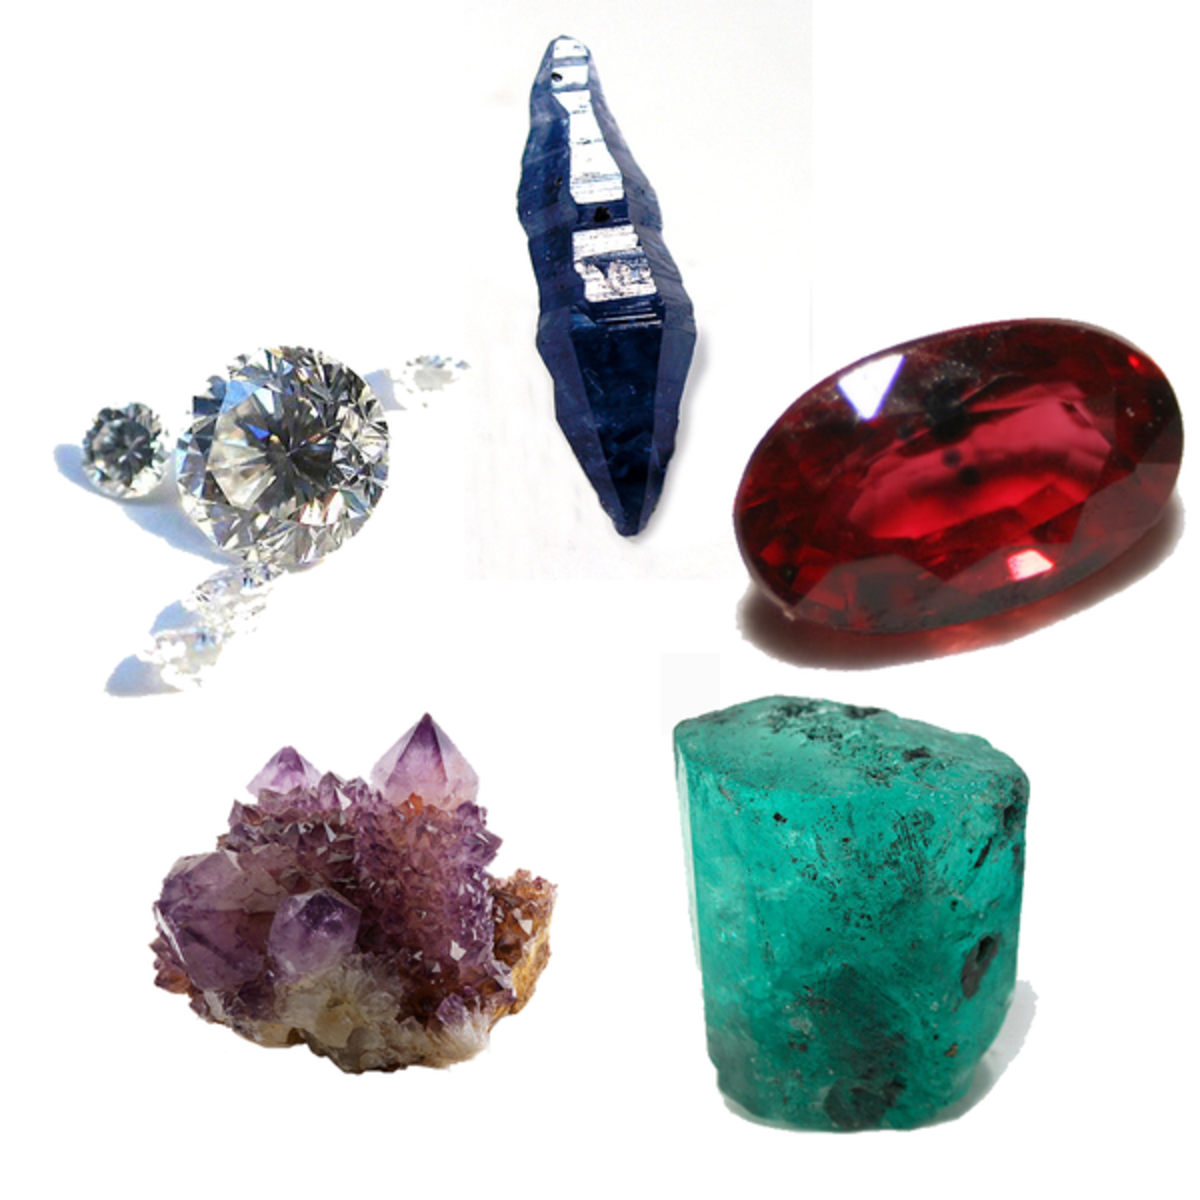 The five cardinal gems of antiquity. Clockwise from top: Sapphire, Ruby, Emerald, Amethyst, Diamond.